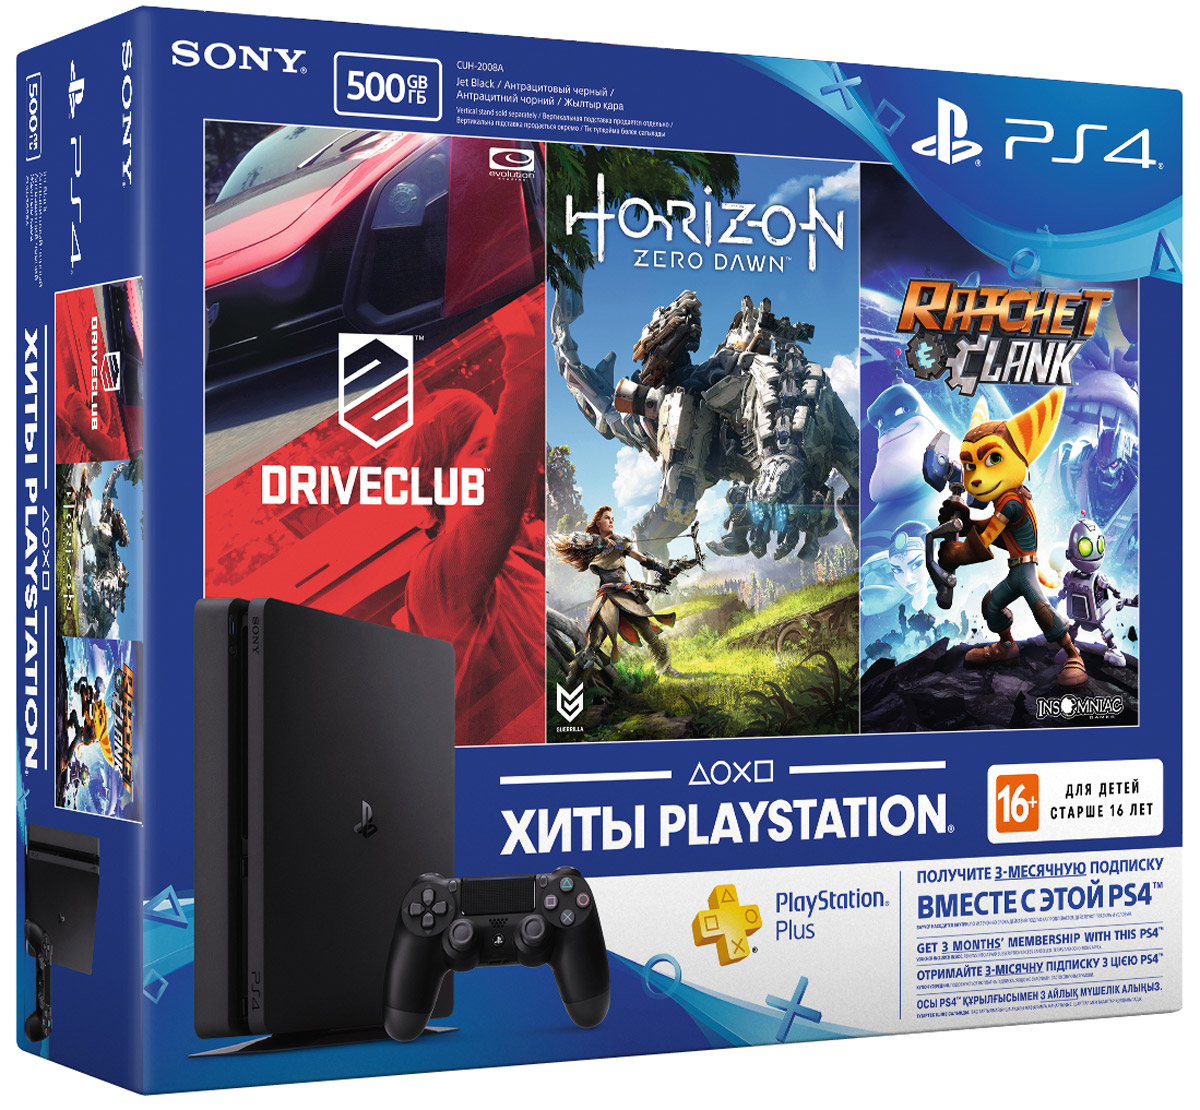 Игровая приставка Sony PlayStation 4 Slim (500 GB) + Driveclub + Horizon Zero Dawn + Ratchet & Clank - Игровые консоли